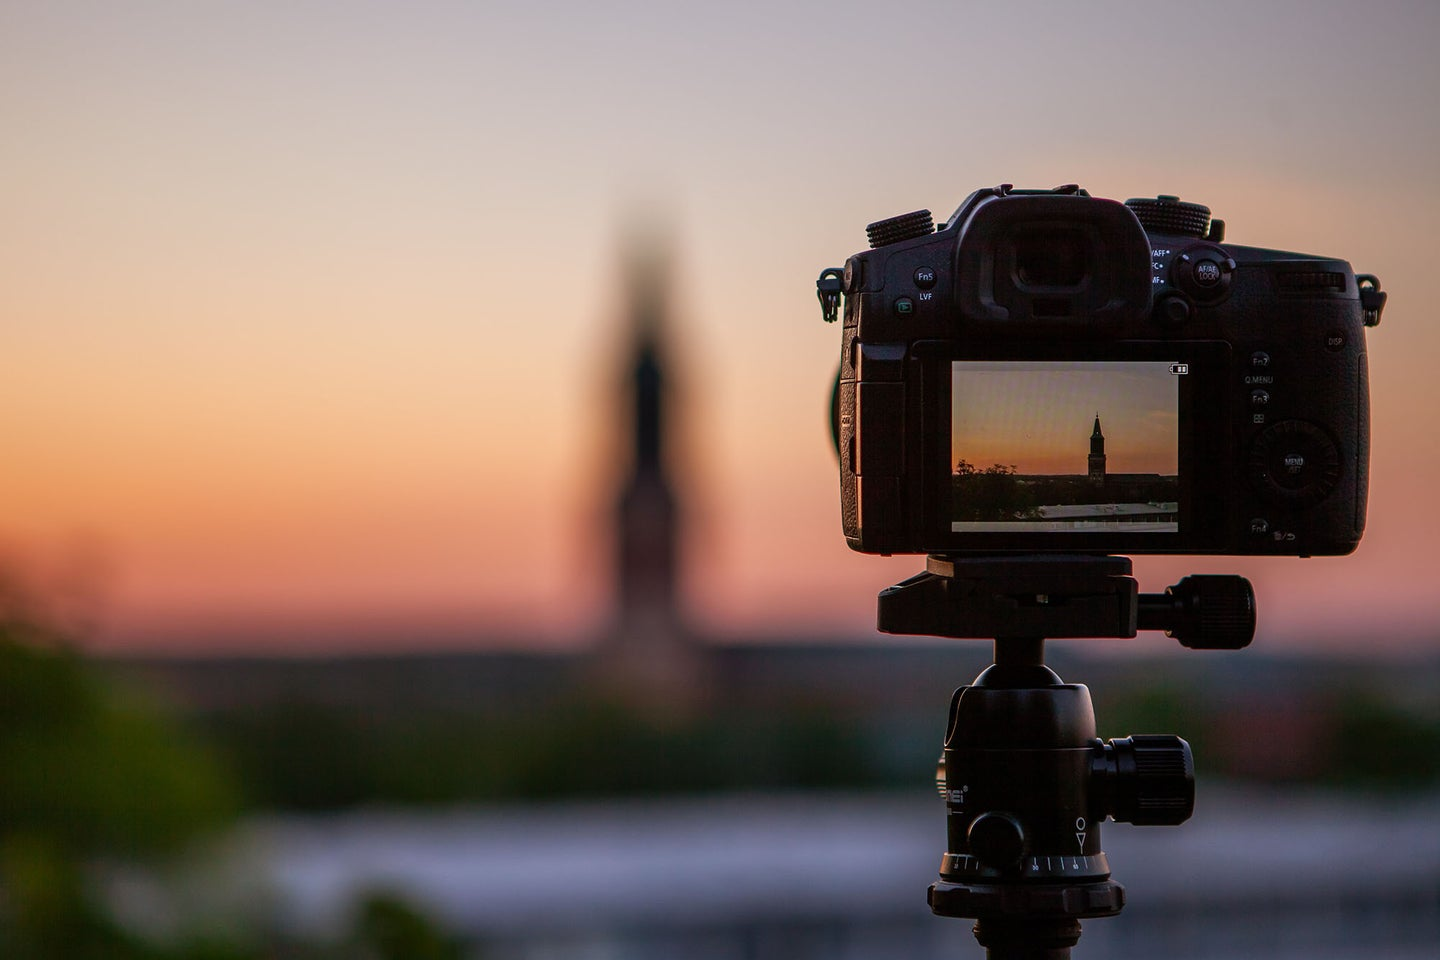 camera on a tripod facing a sunset using the best micro SD card